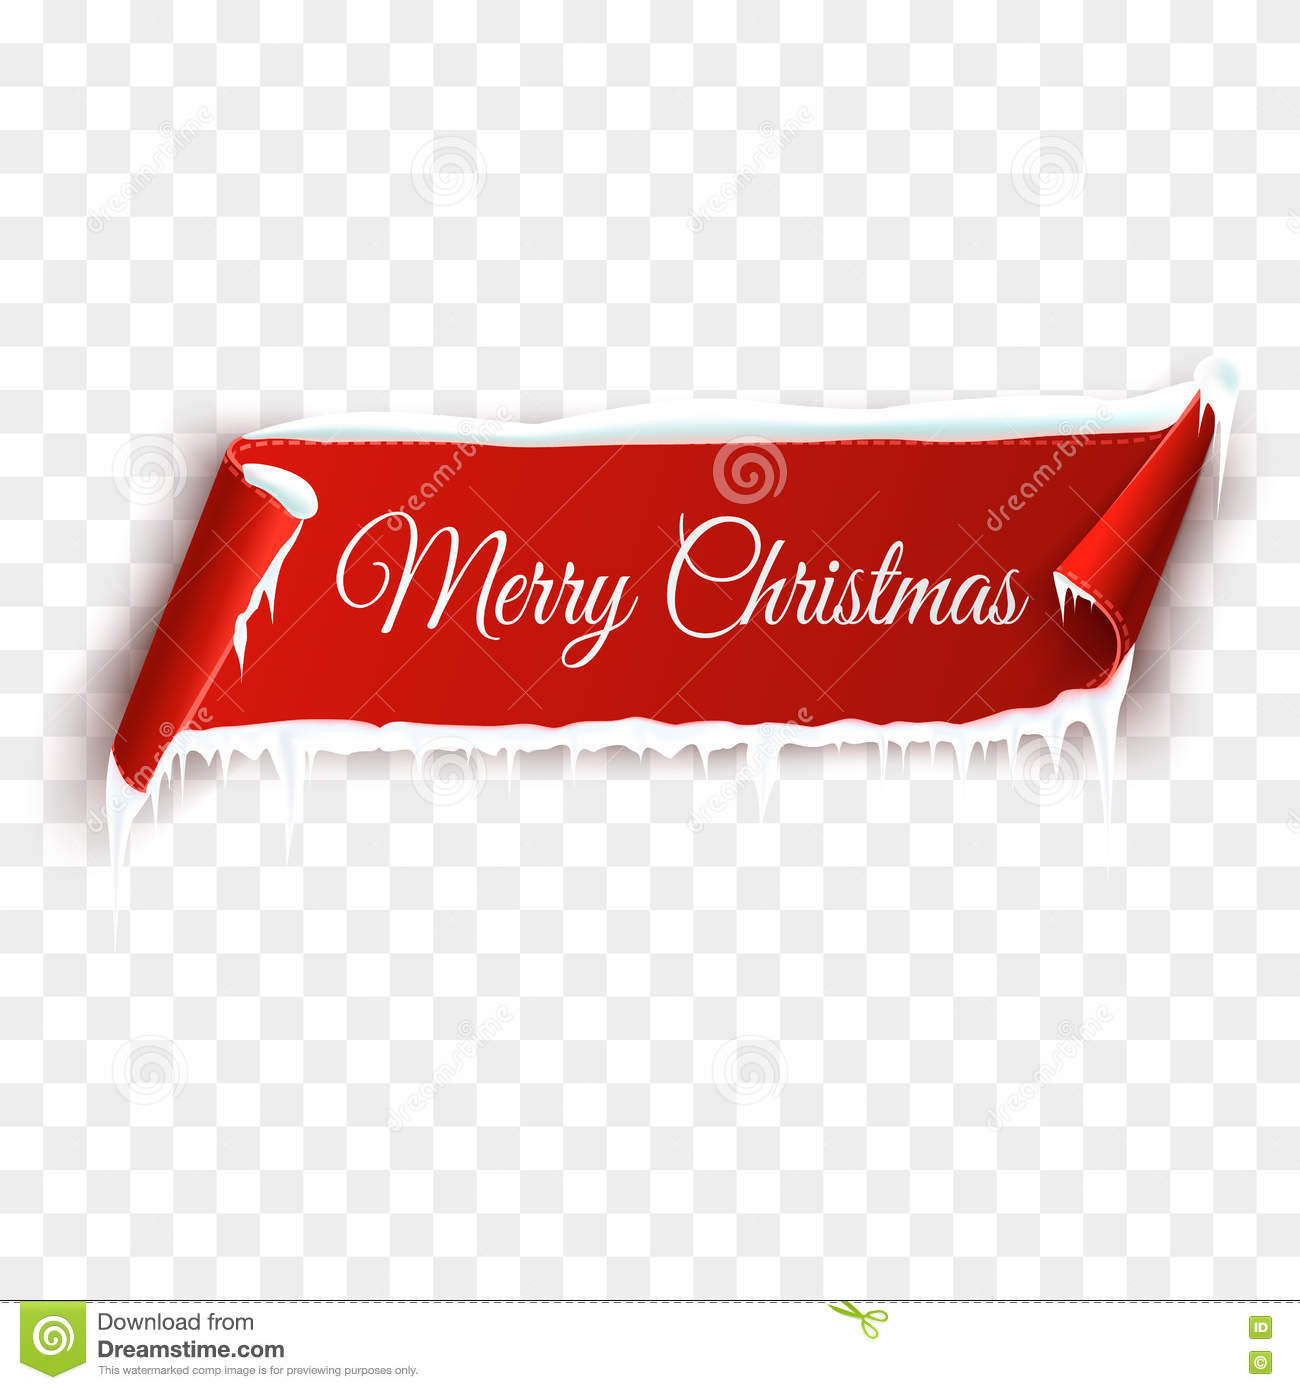 red realistic detailed curved paper merry christmas banner with snow and icicles isolated on transparent background